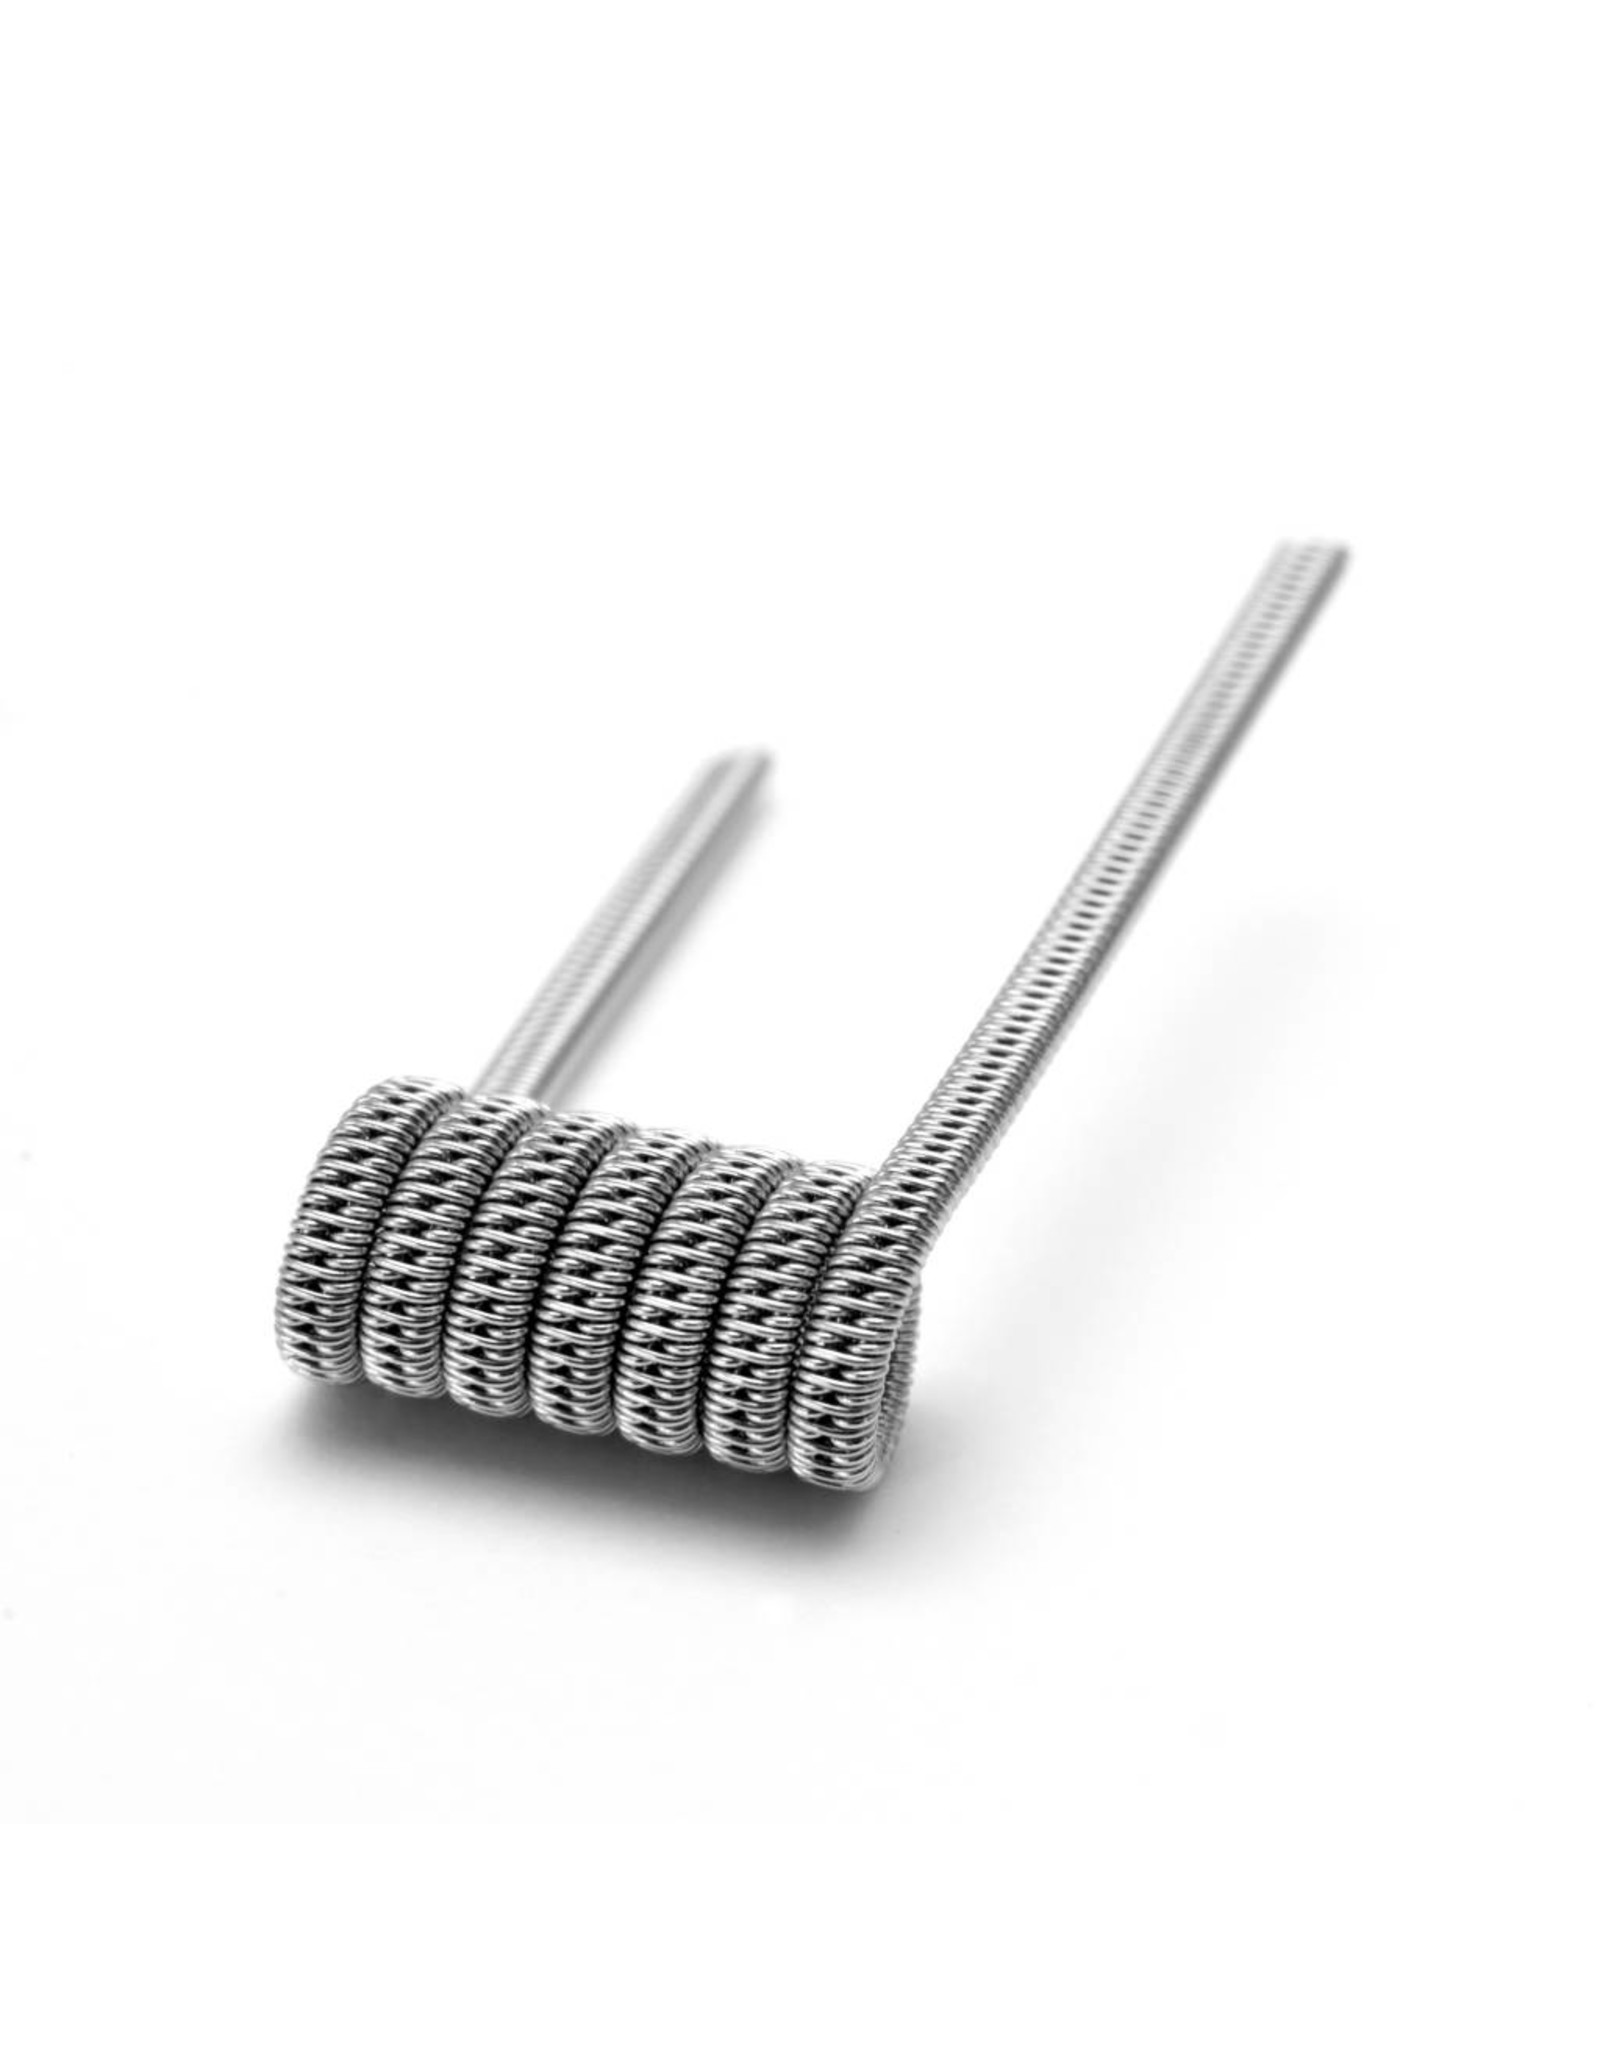 Definitive Coils Definitive Staggered Fused RTA Claptons - V3